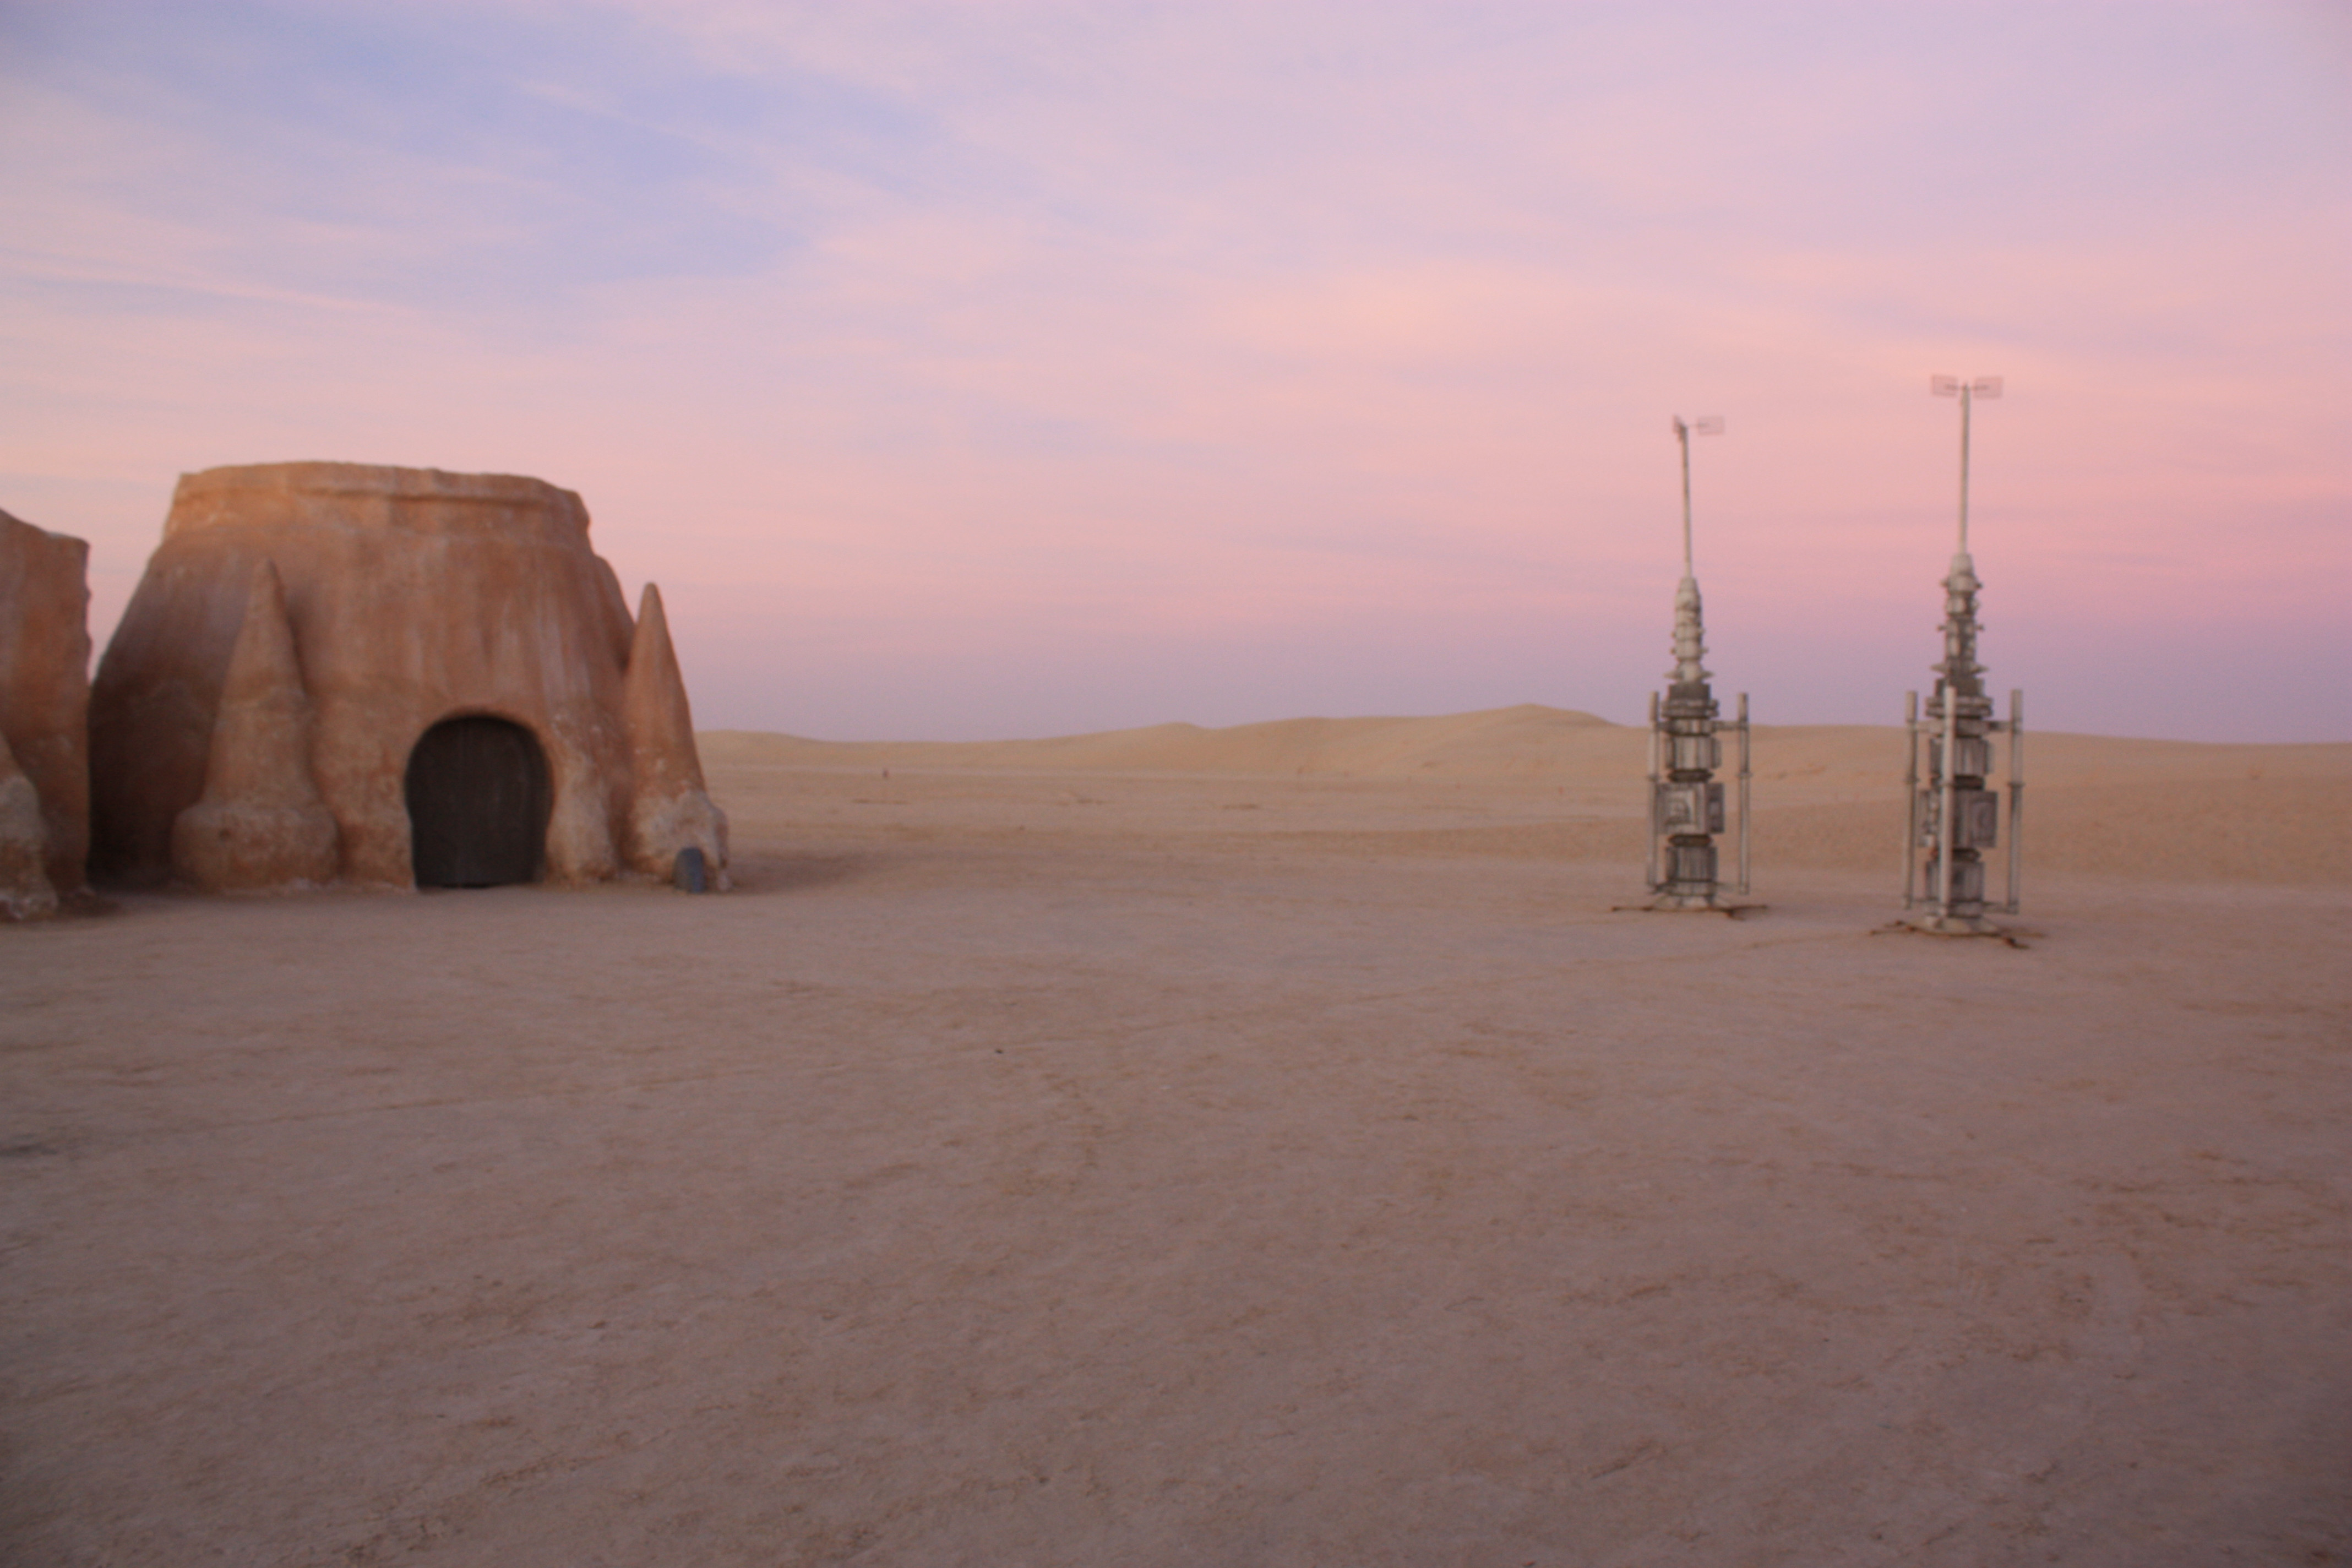 Best ideas about Star Wars Landscape . Save or Pin Star Wars Landscape Wallpaper WallpaperSafari Now.